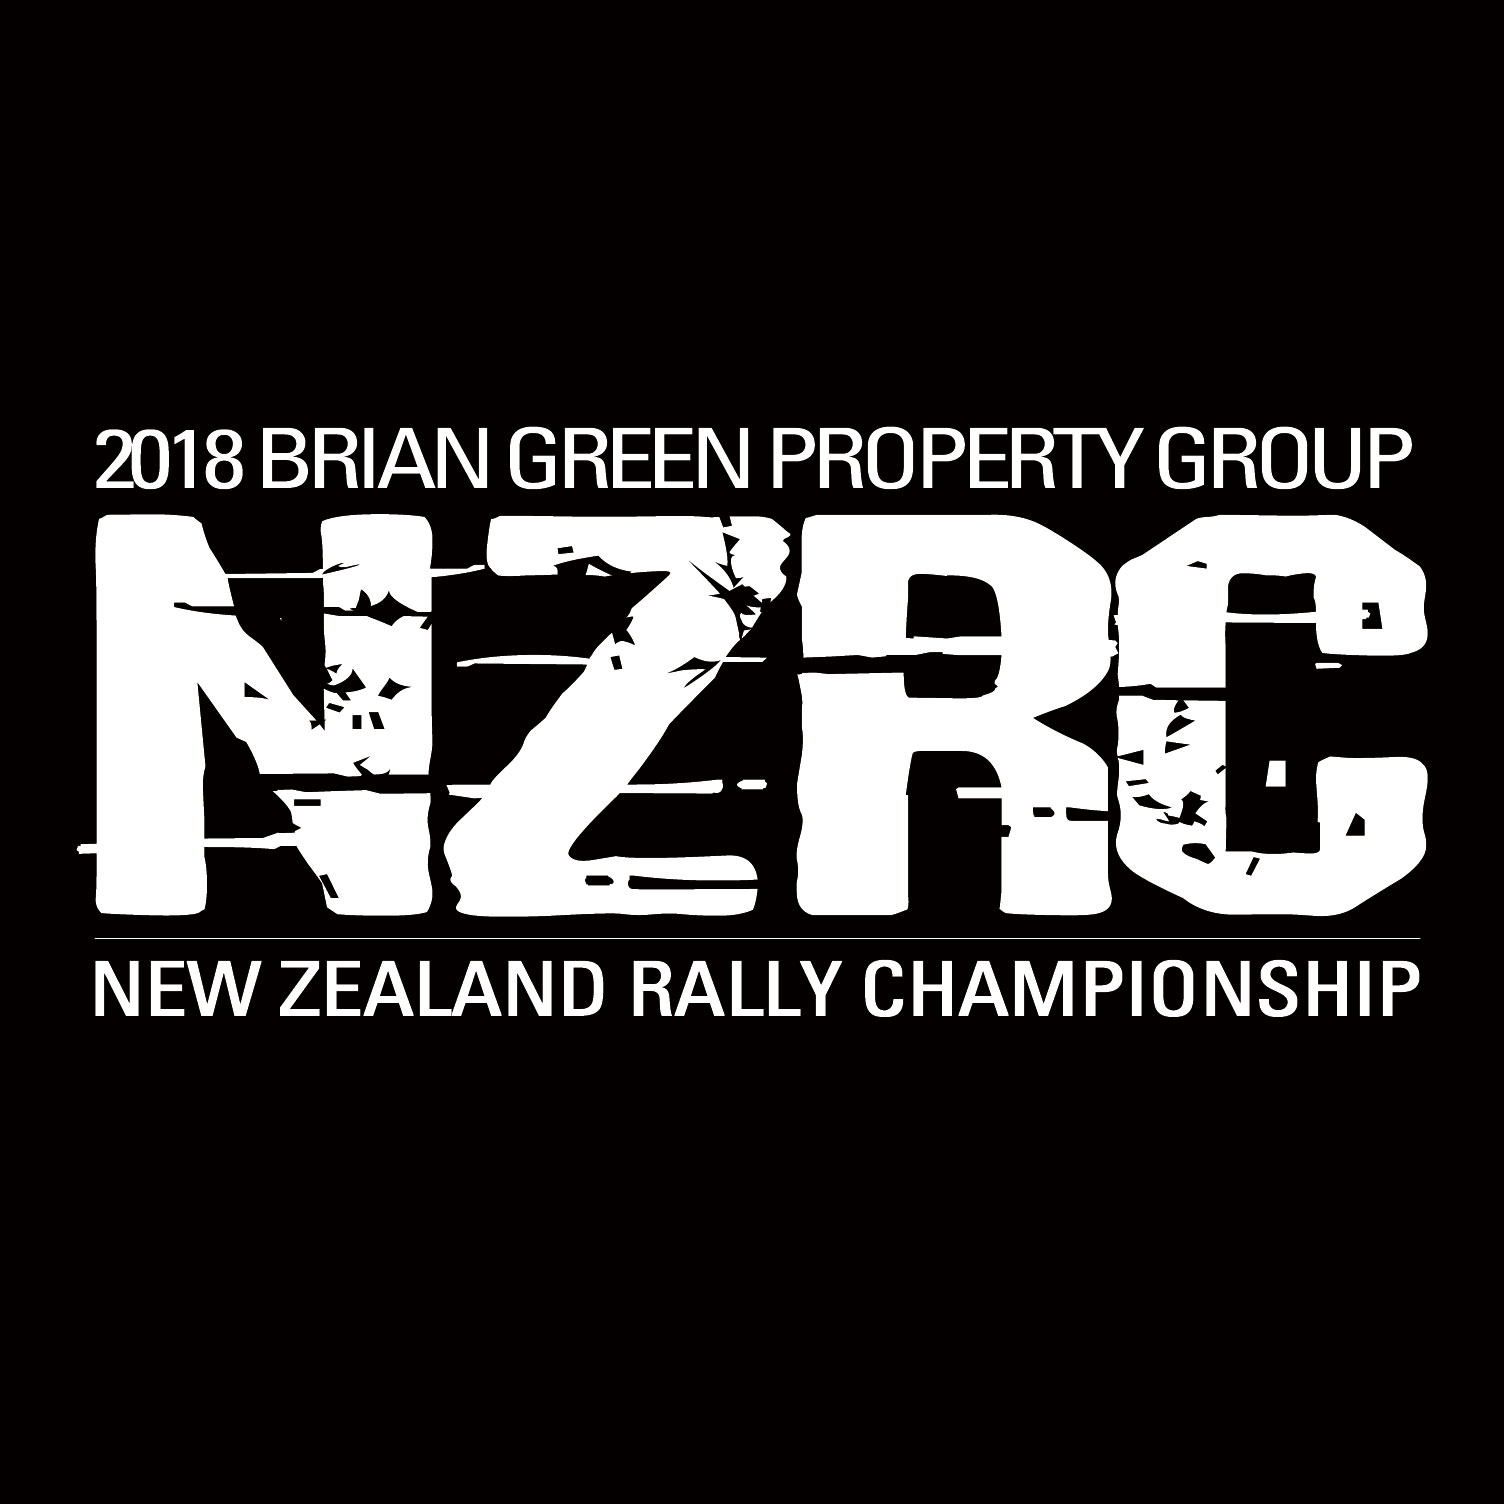 Paddon won't return to defend title in 2019 | :: Brian Green Property Group New Zealand Rally Championship ::